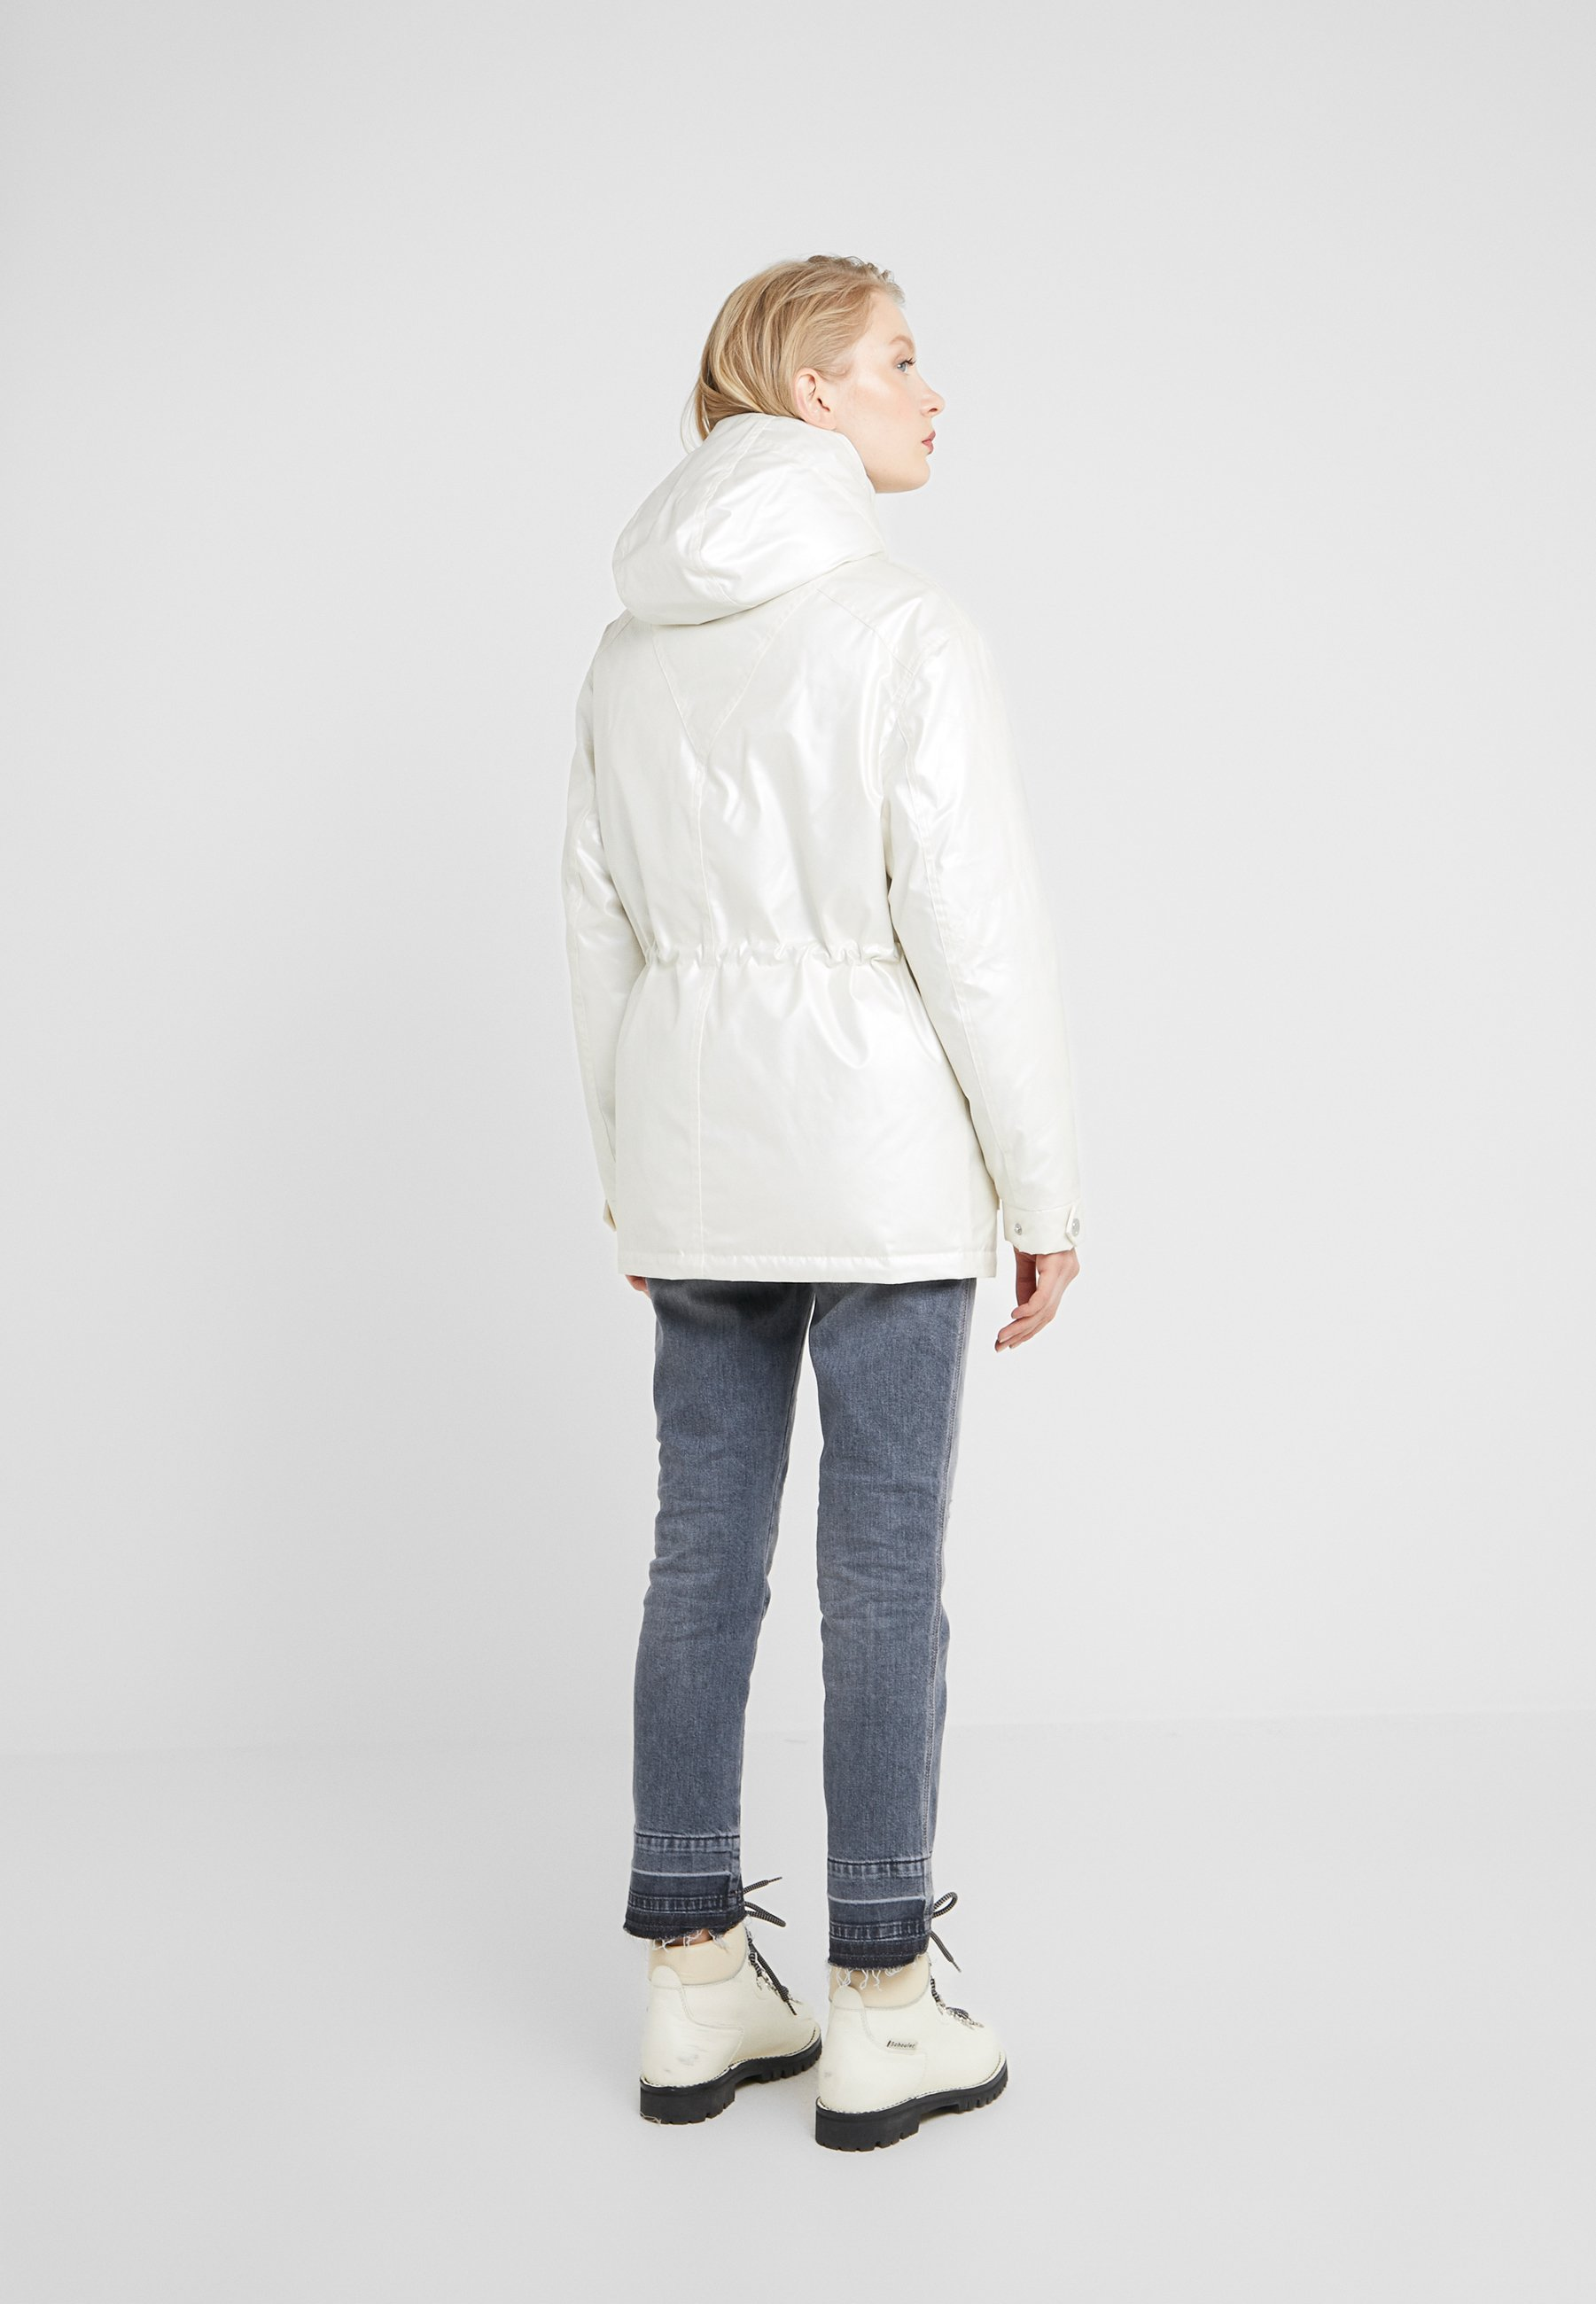 Karl Lagerfeld Technical Jacket With Hood - Donsjas Metallic Pearl DMN7gMUW